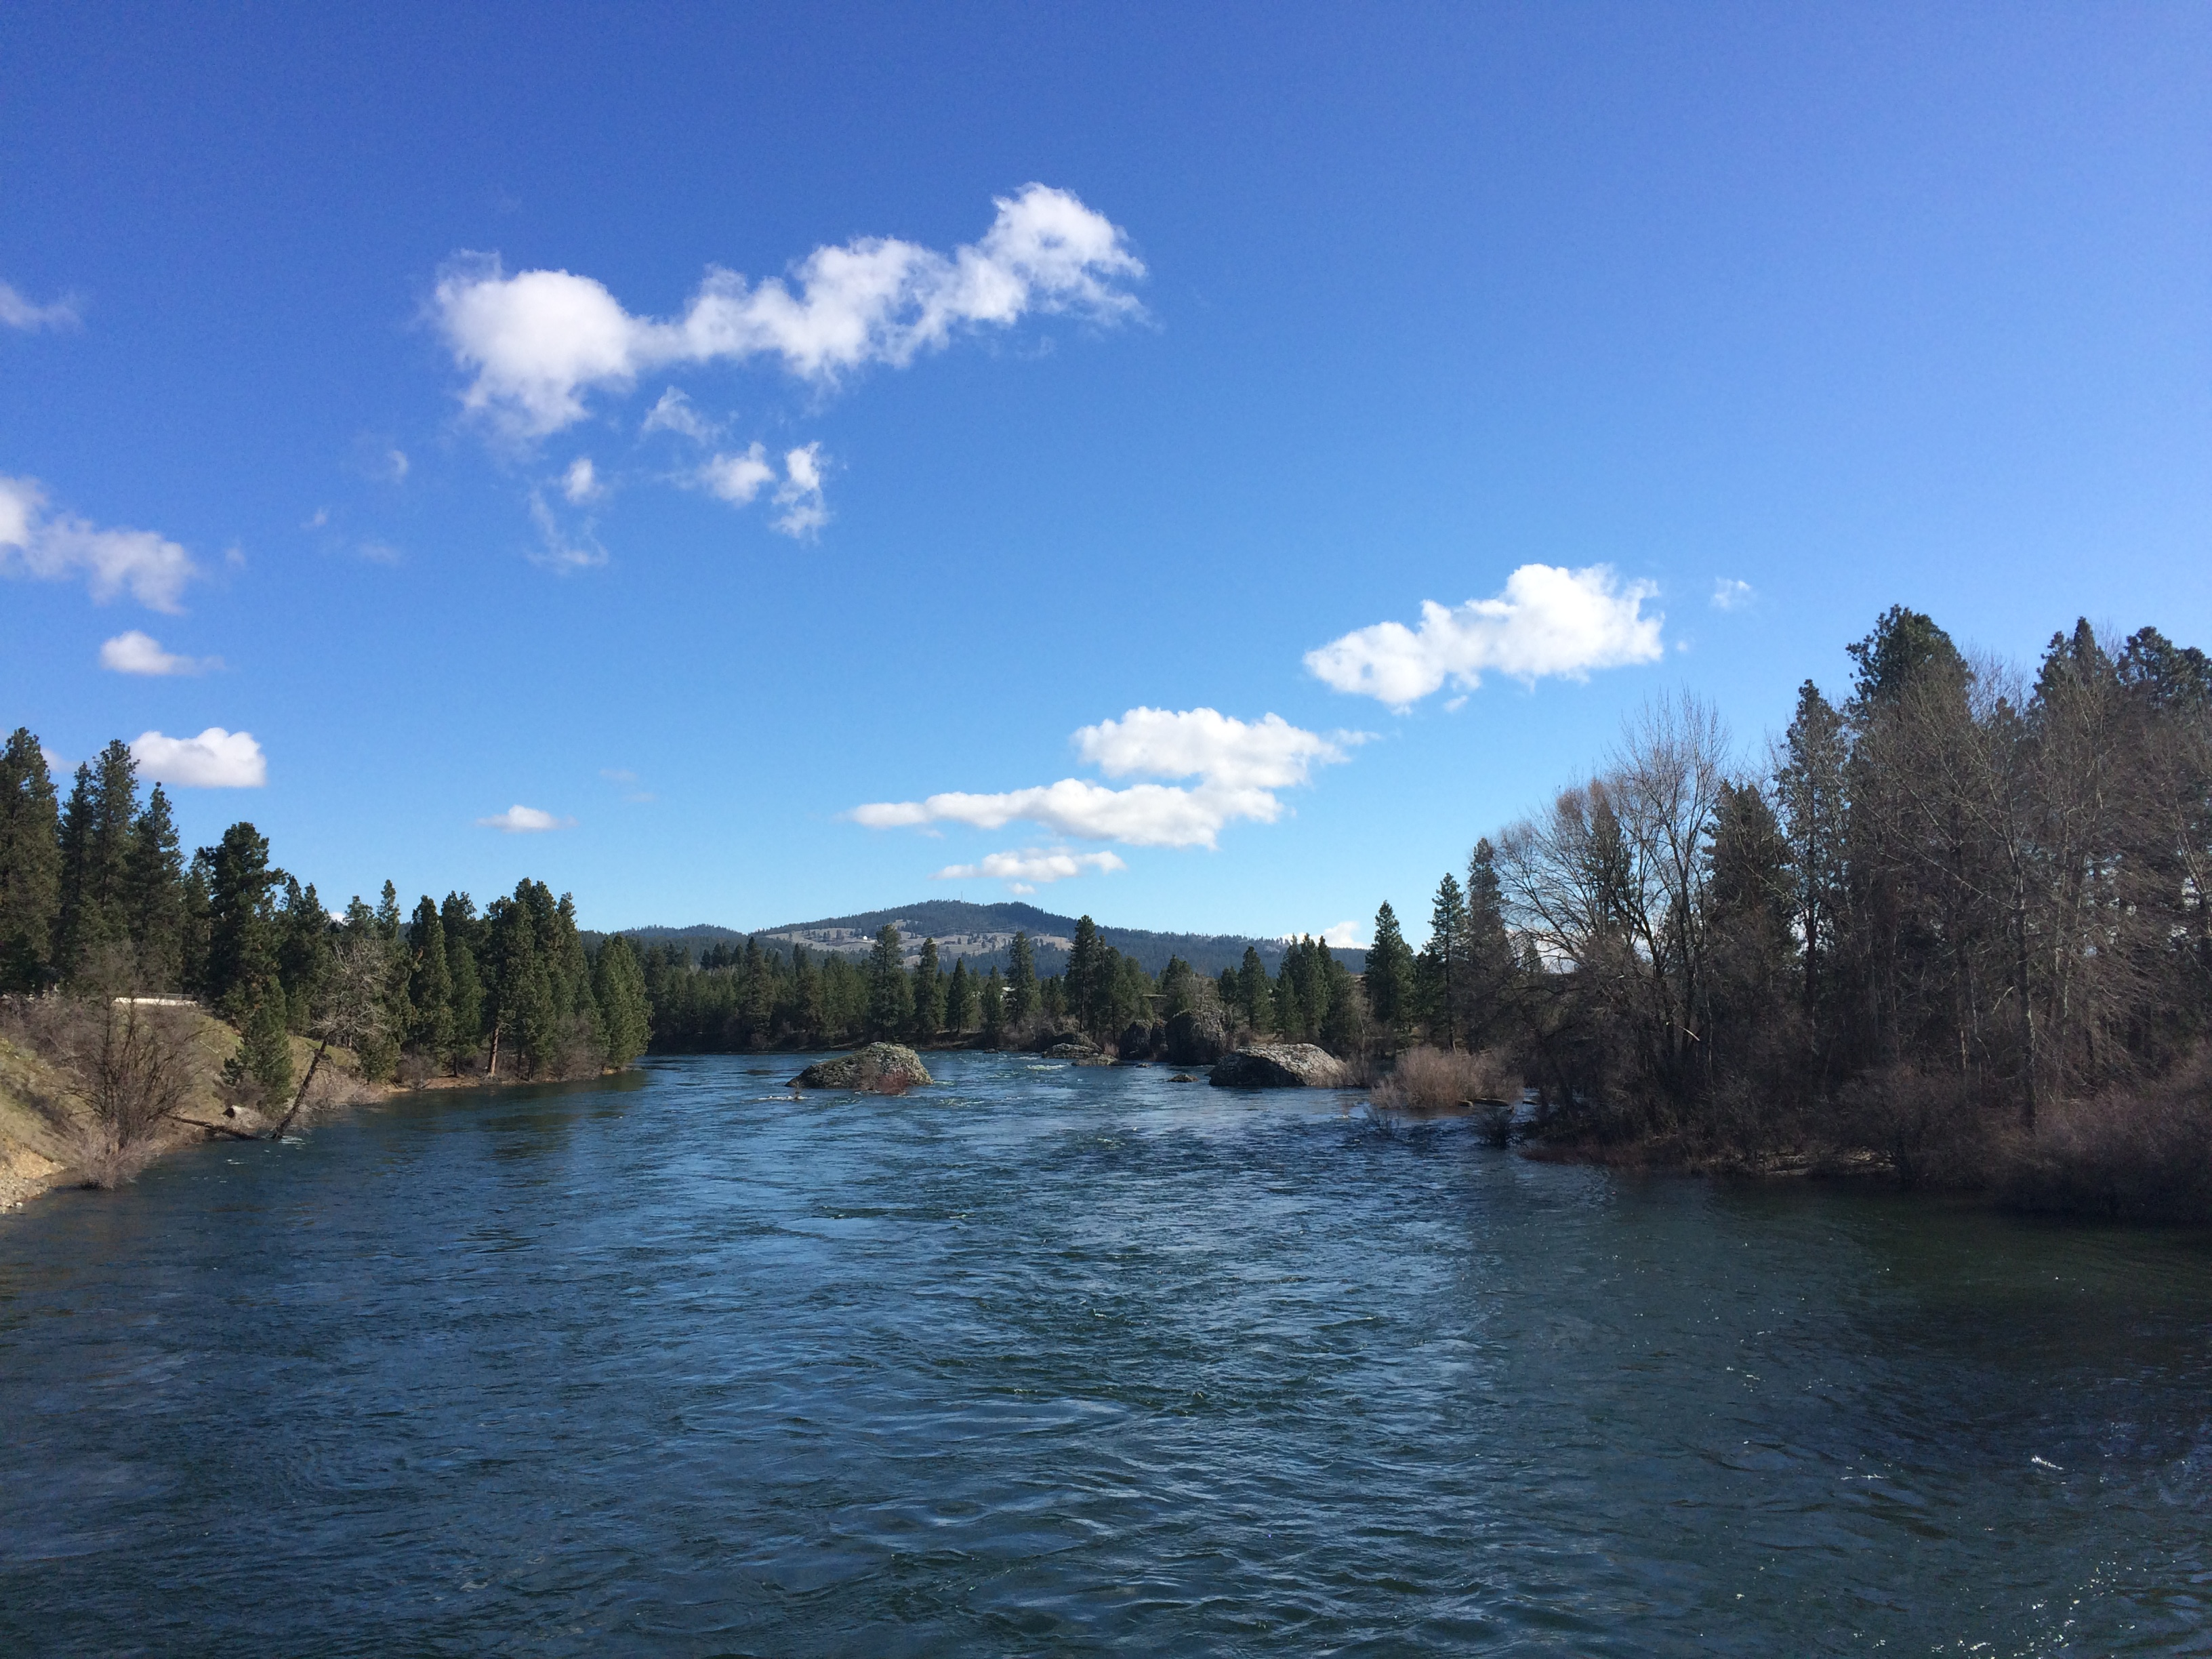 Looking downriver from Islands Lagoon in Spokane Valley